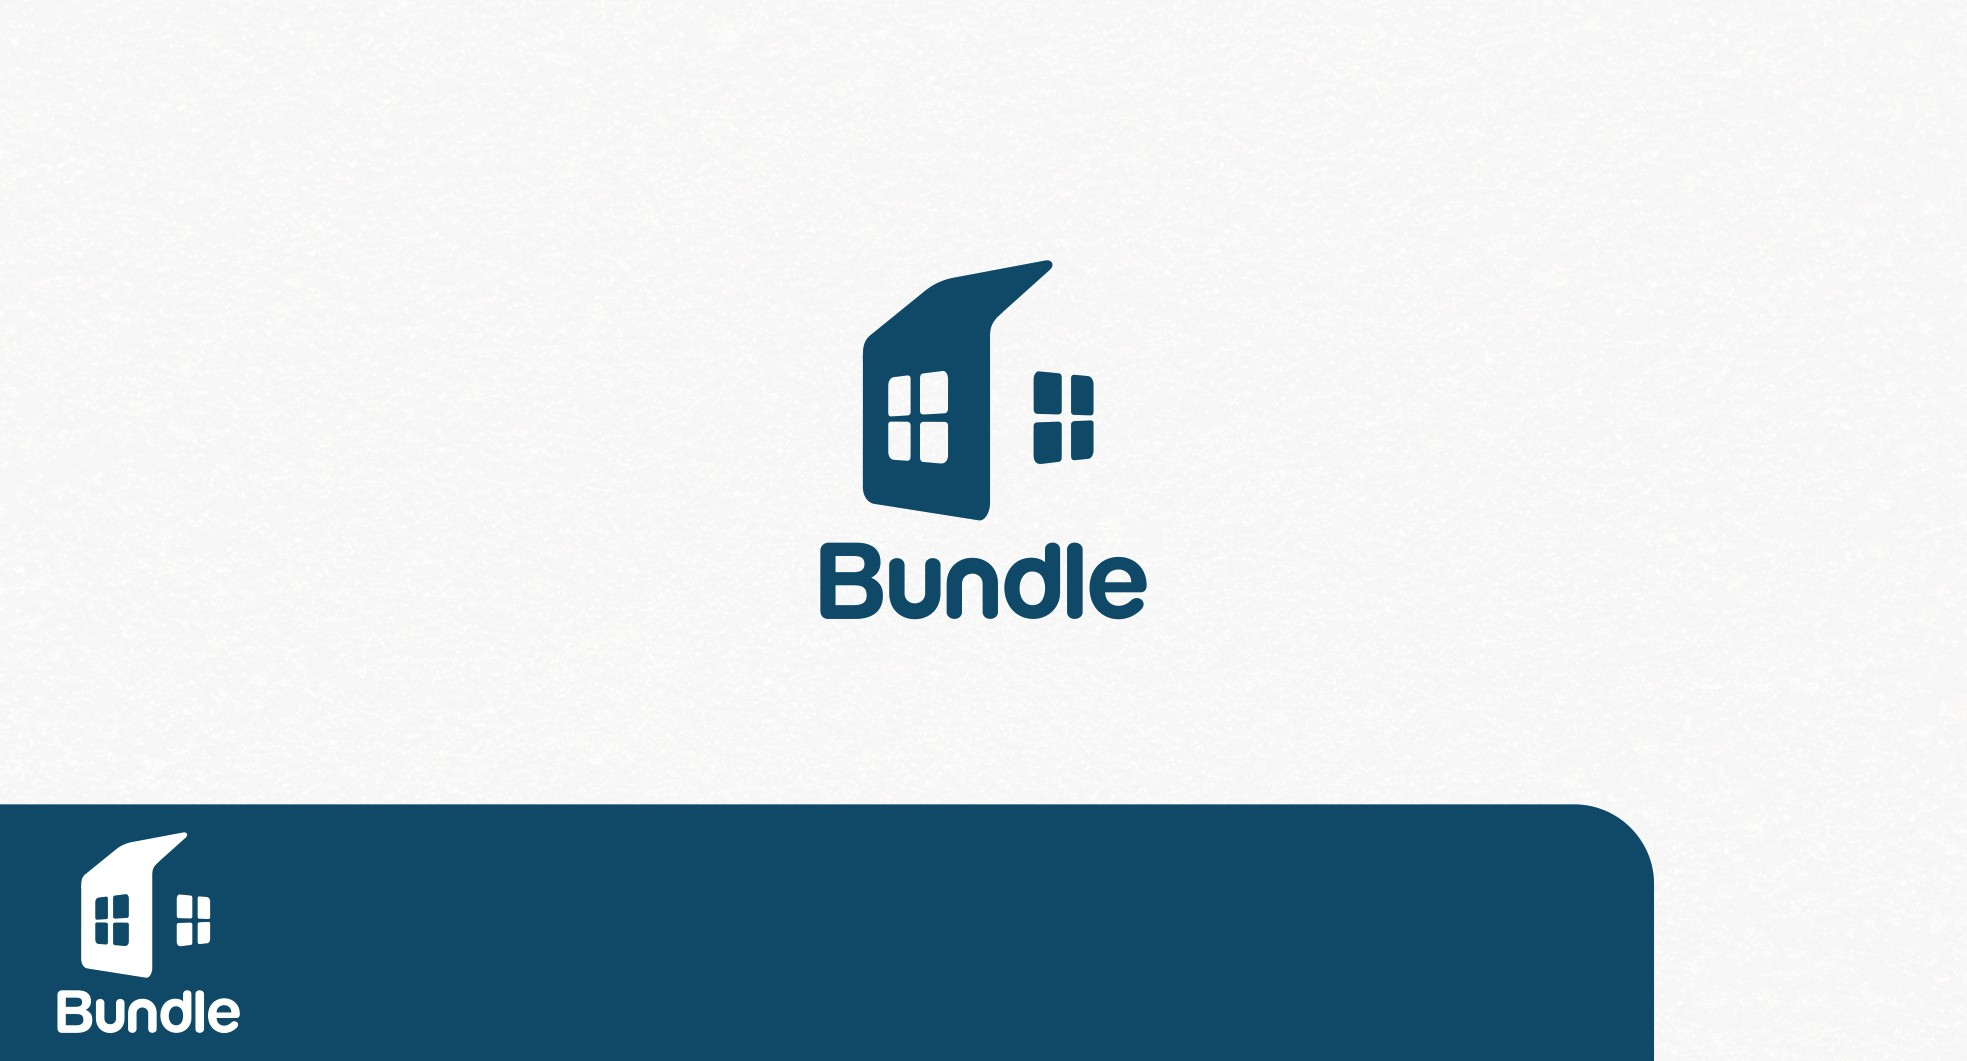 Create an iconic logo that celebrates the beauty and simplicity of prefab homes!